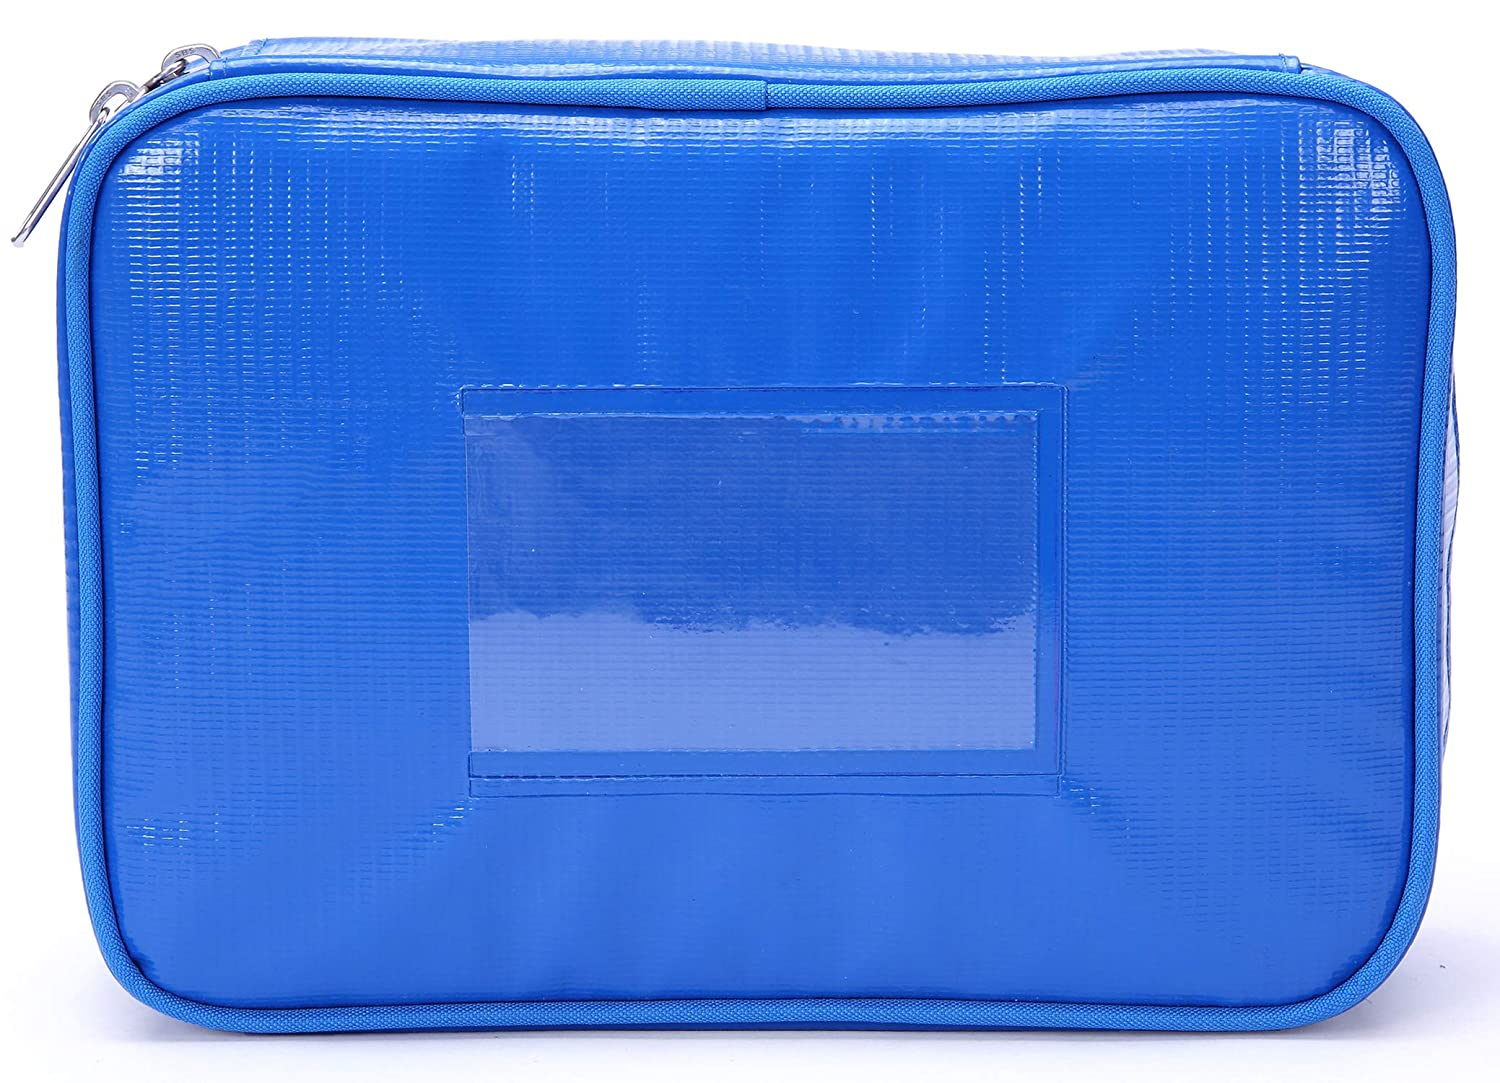 MIER Waterproof Small Medical Bag First Aid Empty Bags Emergency Kit Medical Organiser Storage Pouch for Home, Office, Travel, School, Bag Only(Blue)